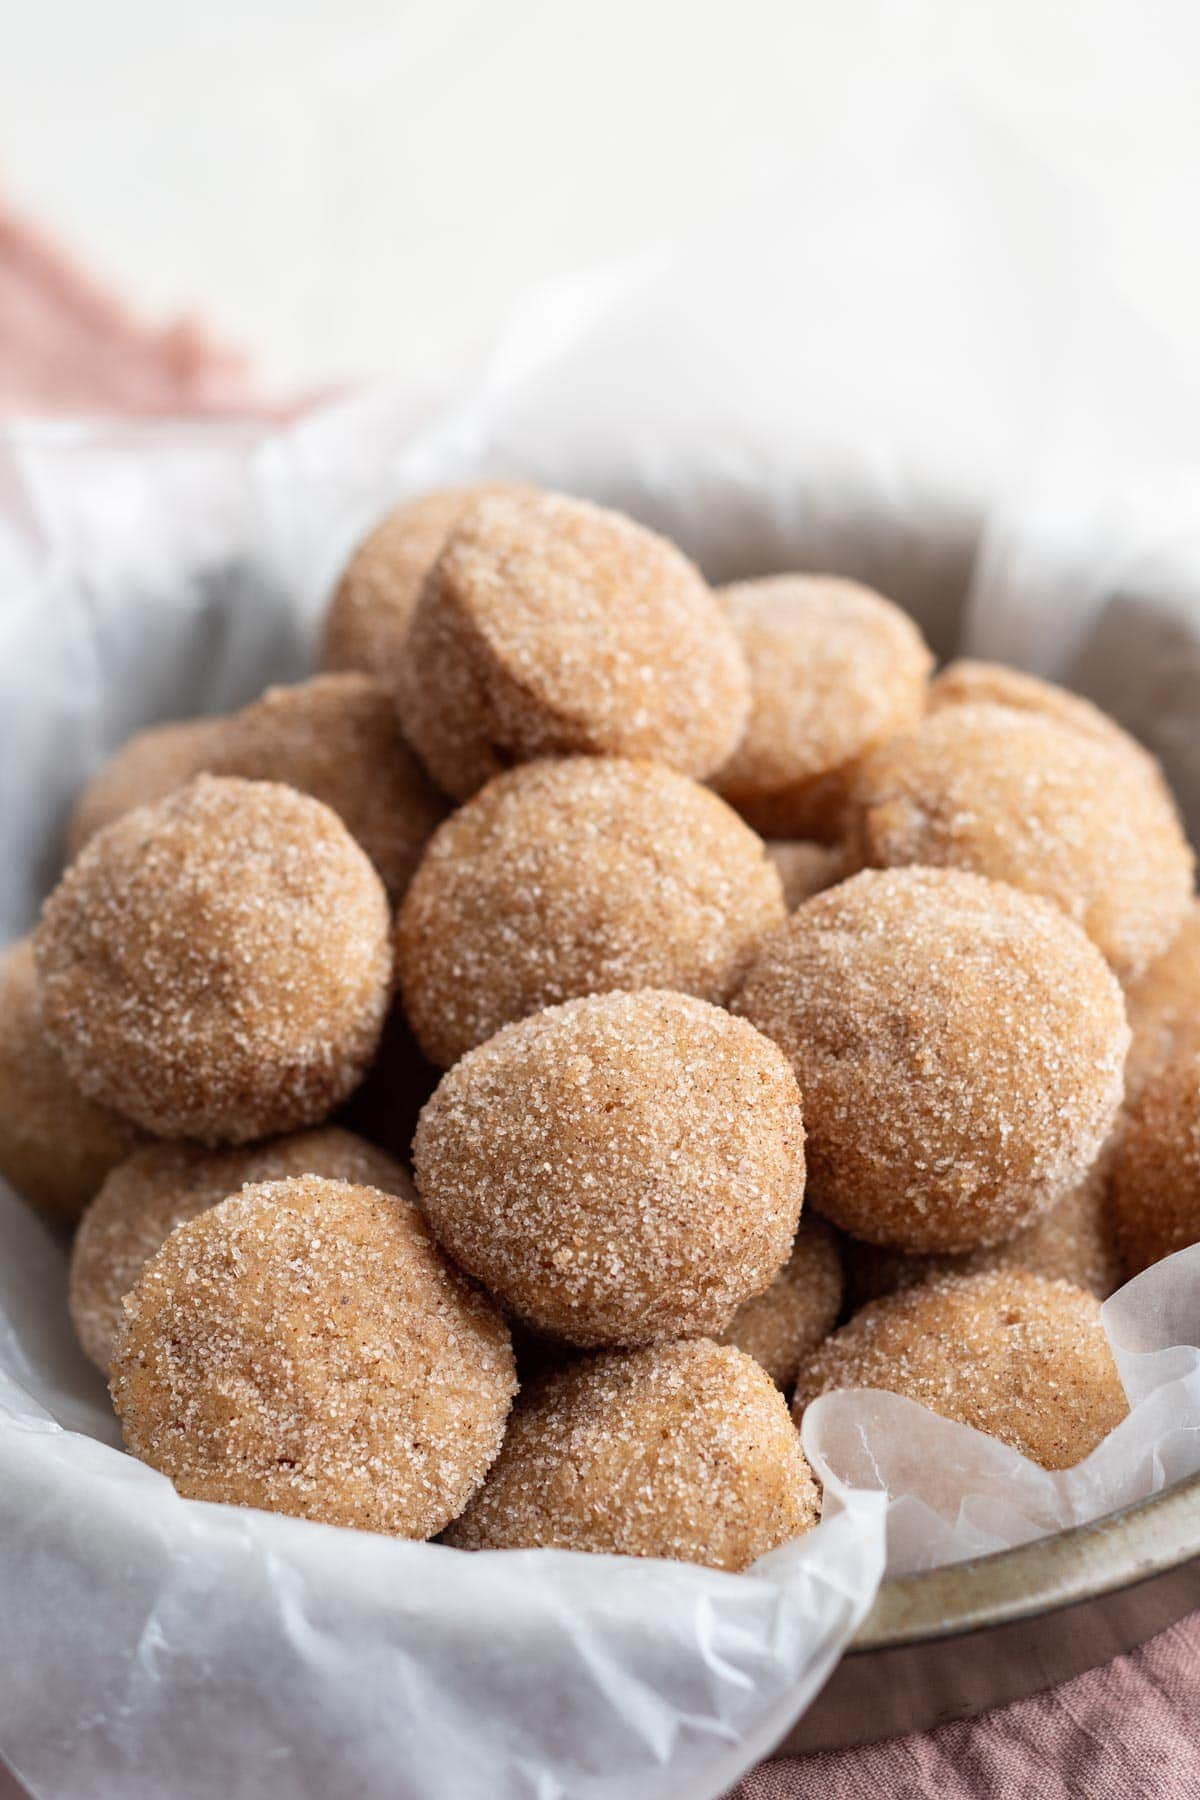 donut holes in a basket with a white towel, coated in cinnamon sugar